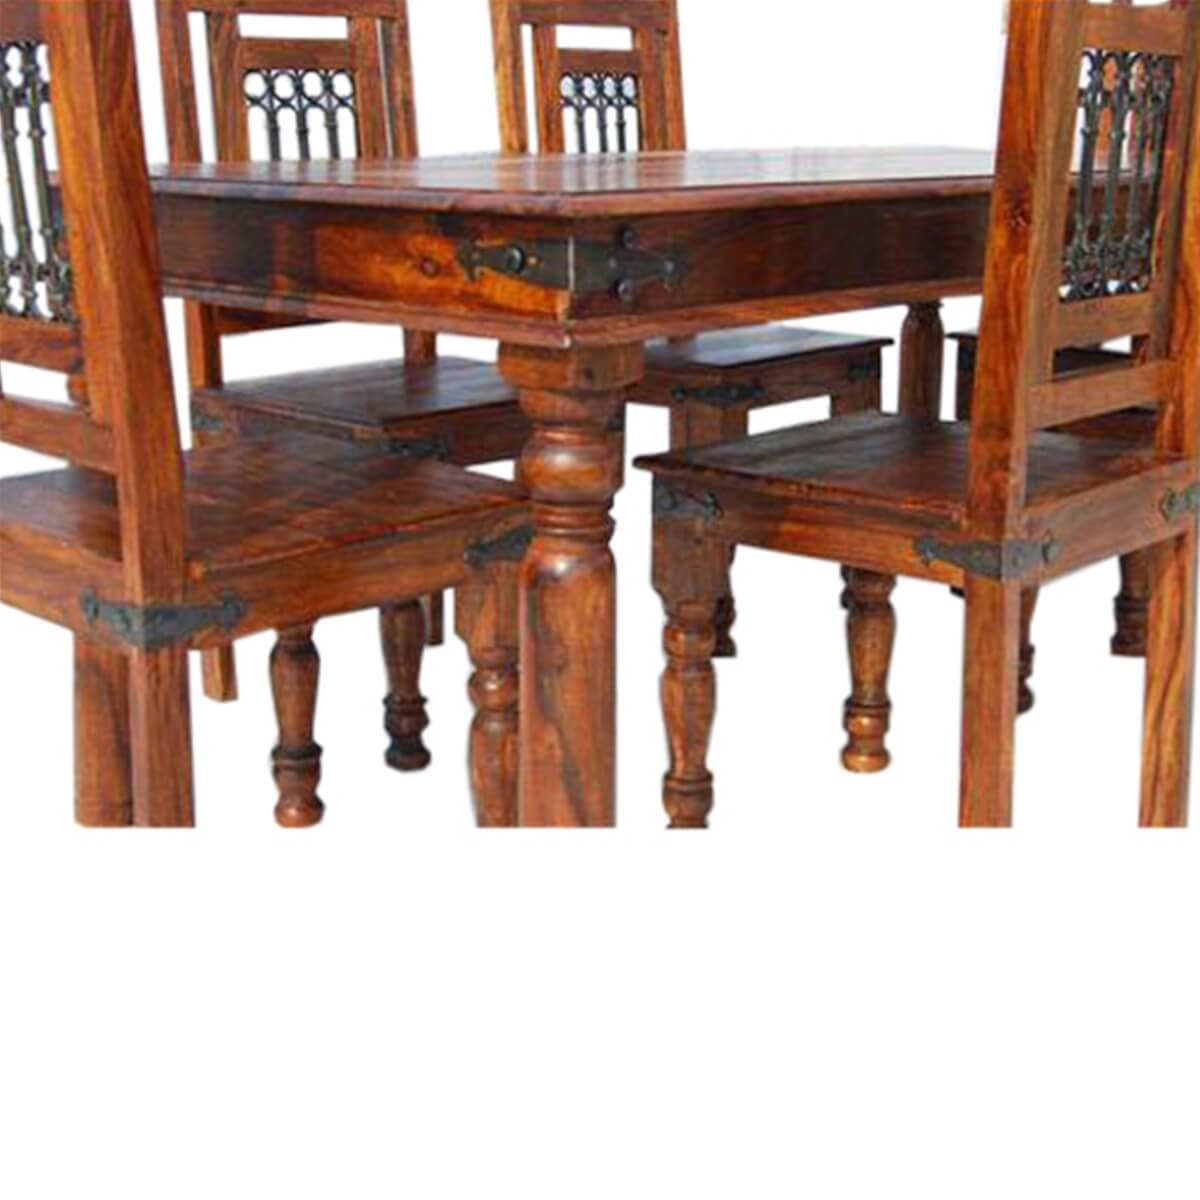 Wrought Iron Dining Table And Chairs : 13074 from hwiki.us size 1200 x 1200 jpeg 423kB